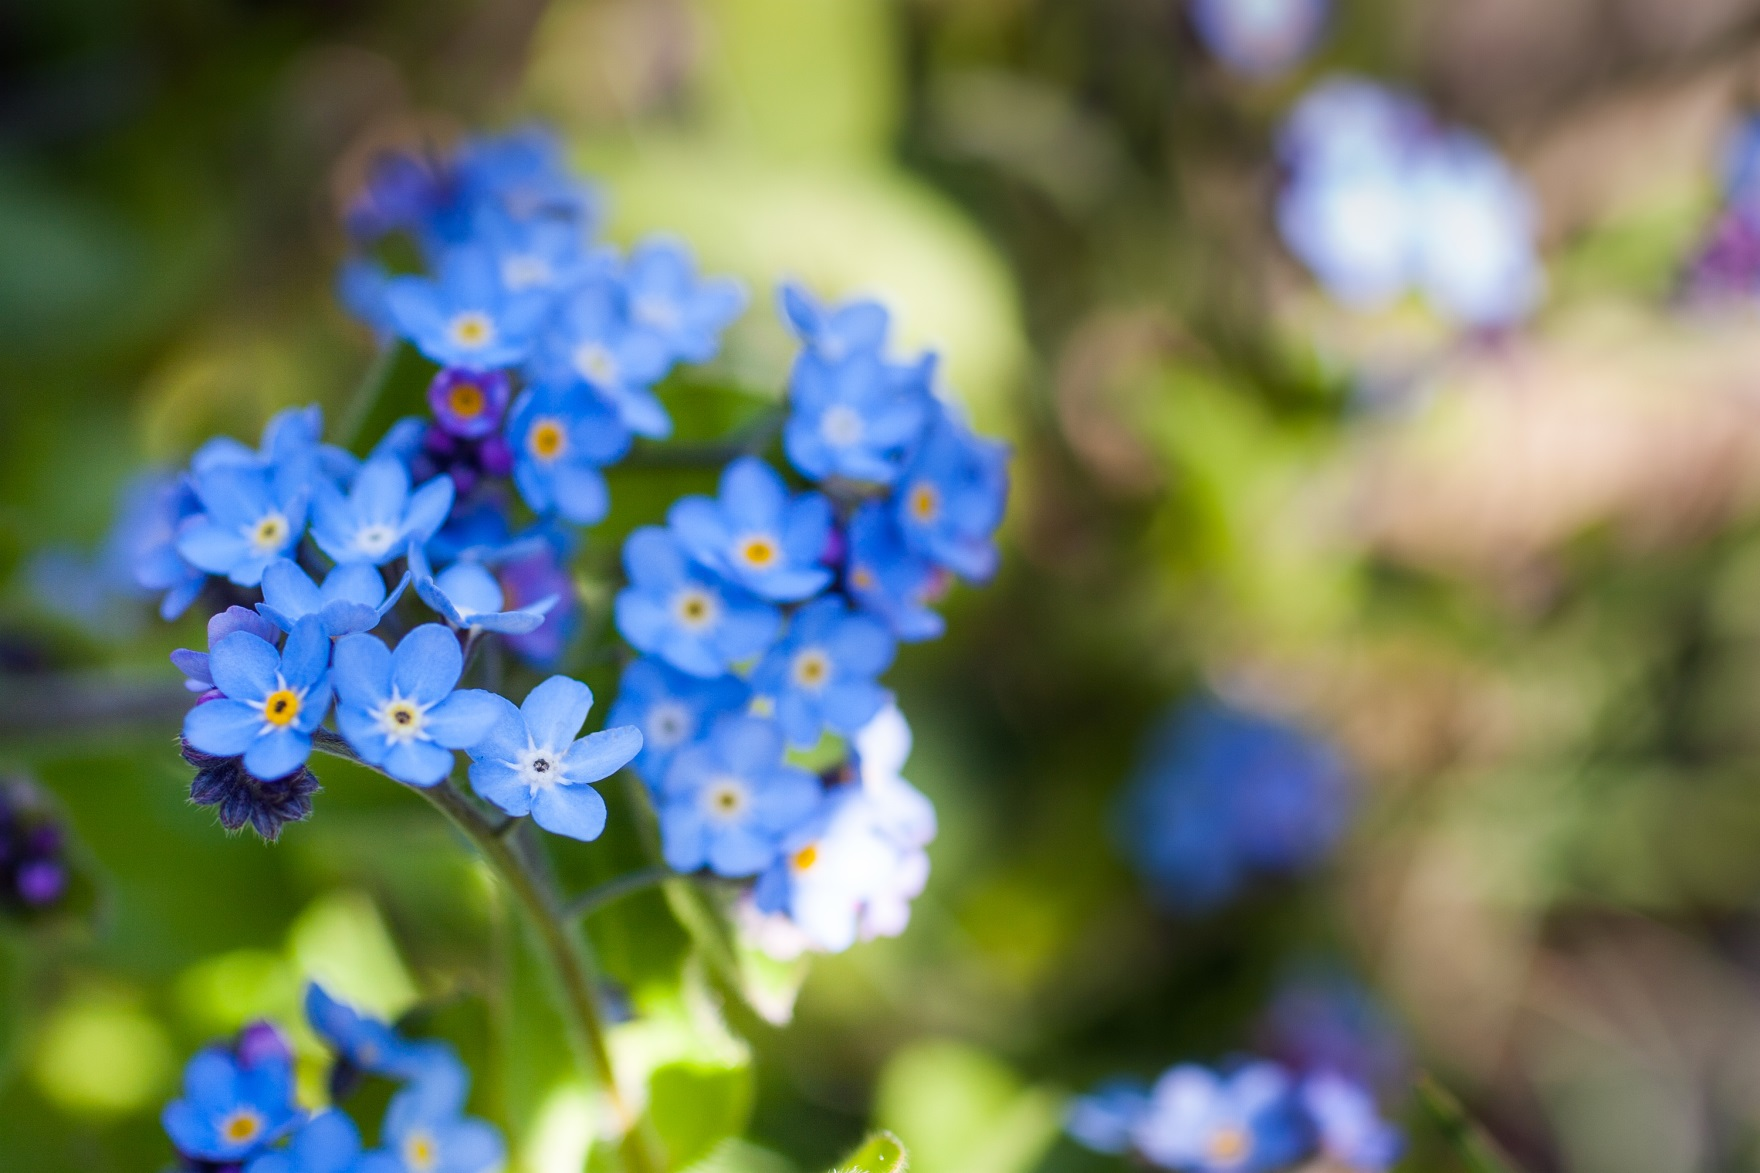 Forget me not flowers3.jpg